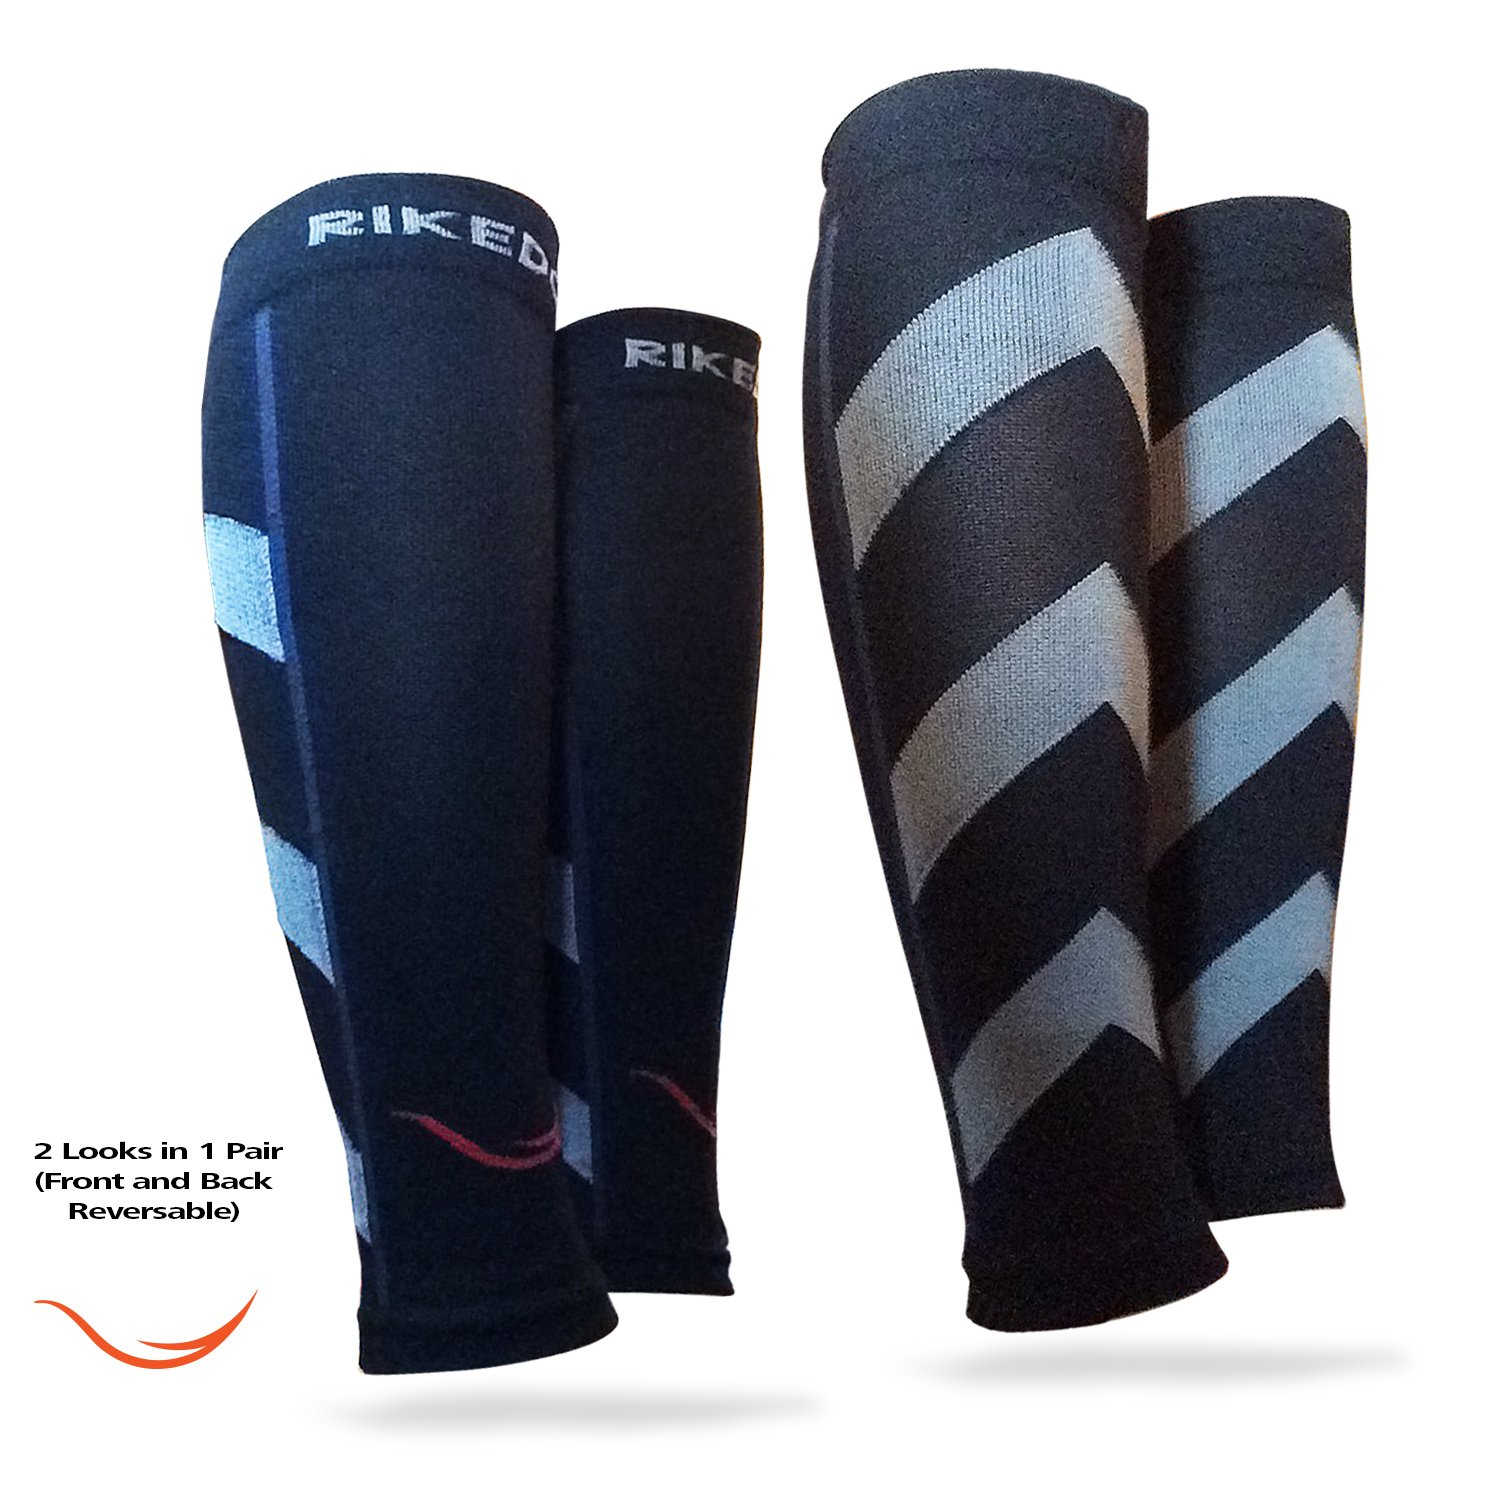 Graduated Calf Compression Sleeves Socks: Best Men & Women Pain Relief Stocking for Shin Splints, Leg Cramps Strains, Varicose Veins, Swelling. Increase Blood Circulation, Anti Fatigue & Fast Recovery,Black,Medium